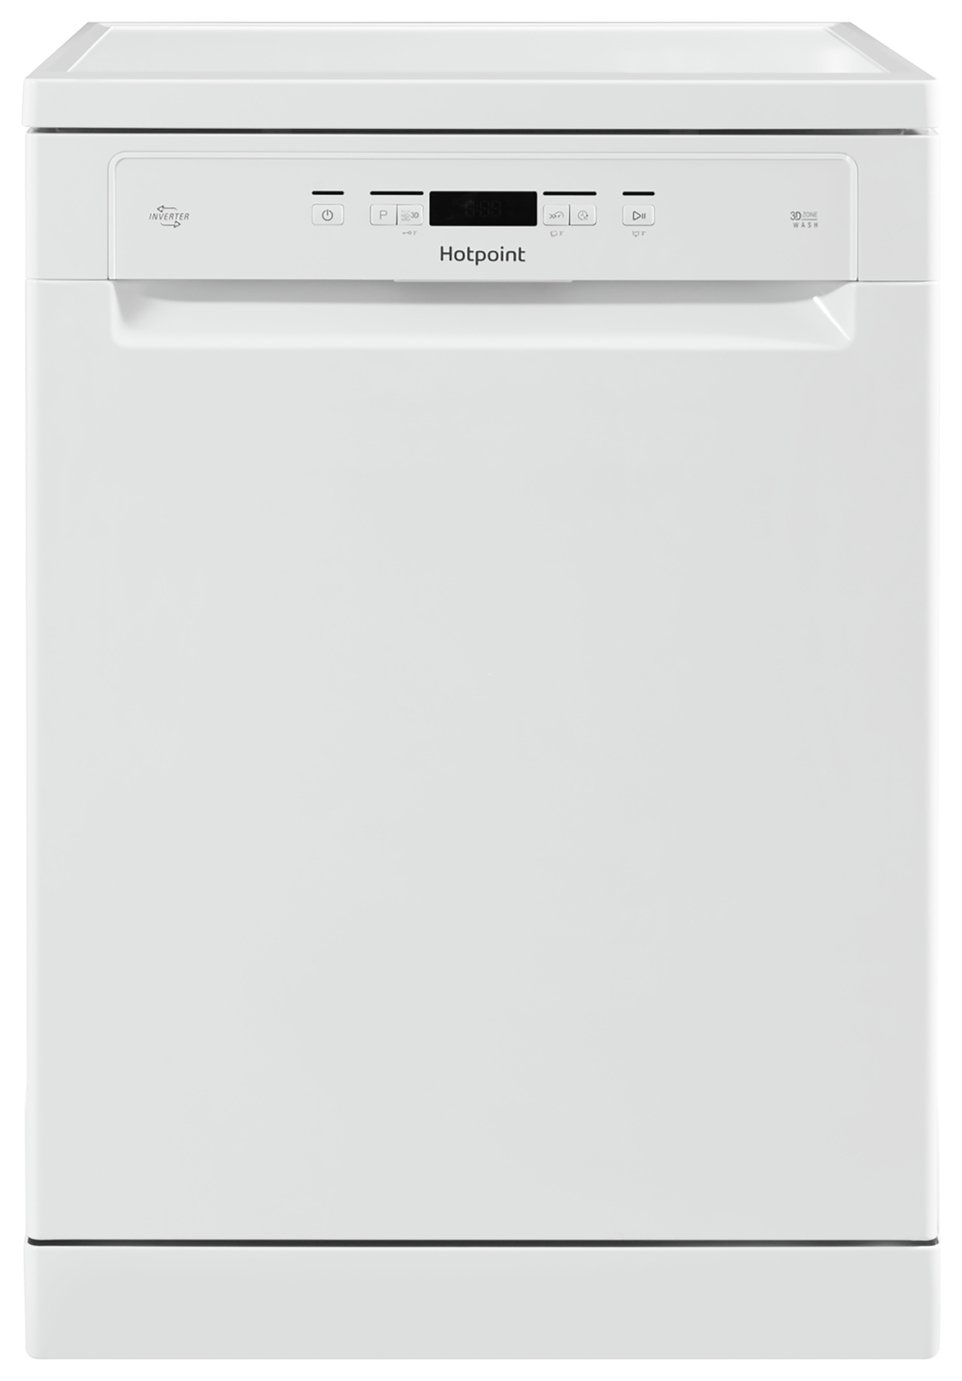 Hotpoint HFO3C22WF Full Size Dishwasher - White